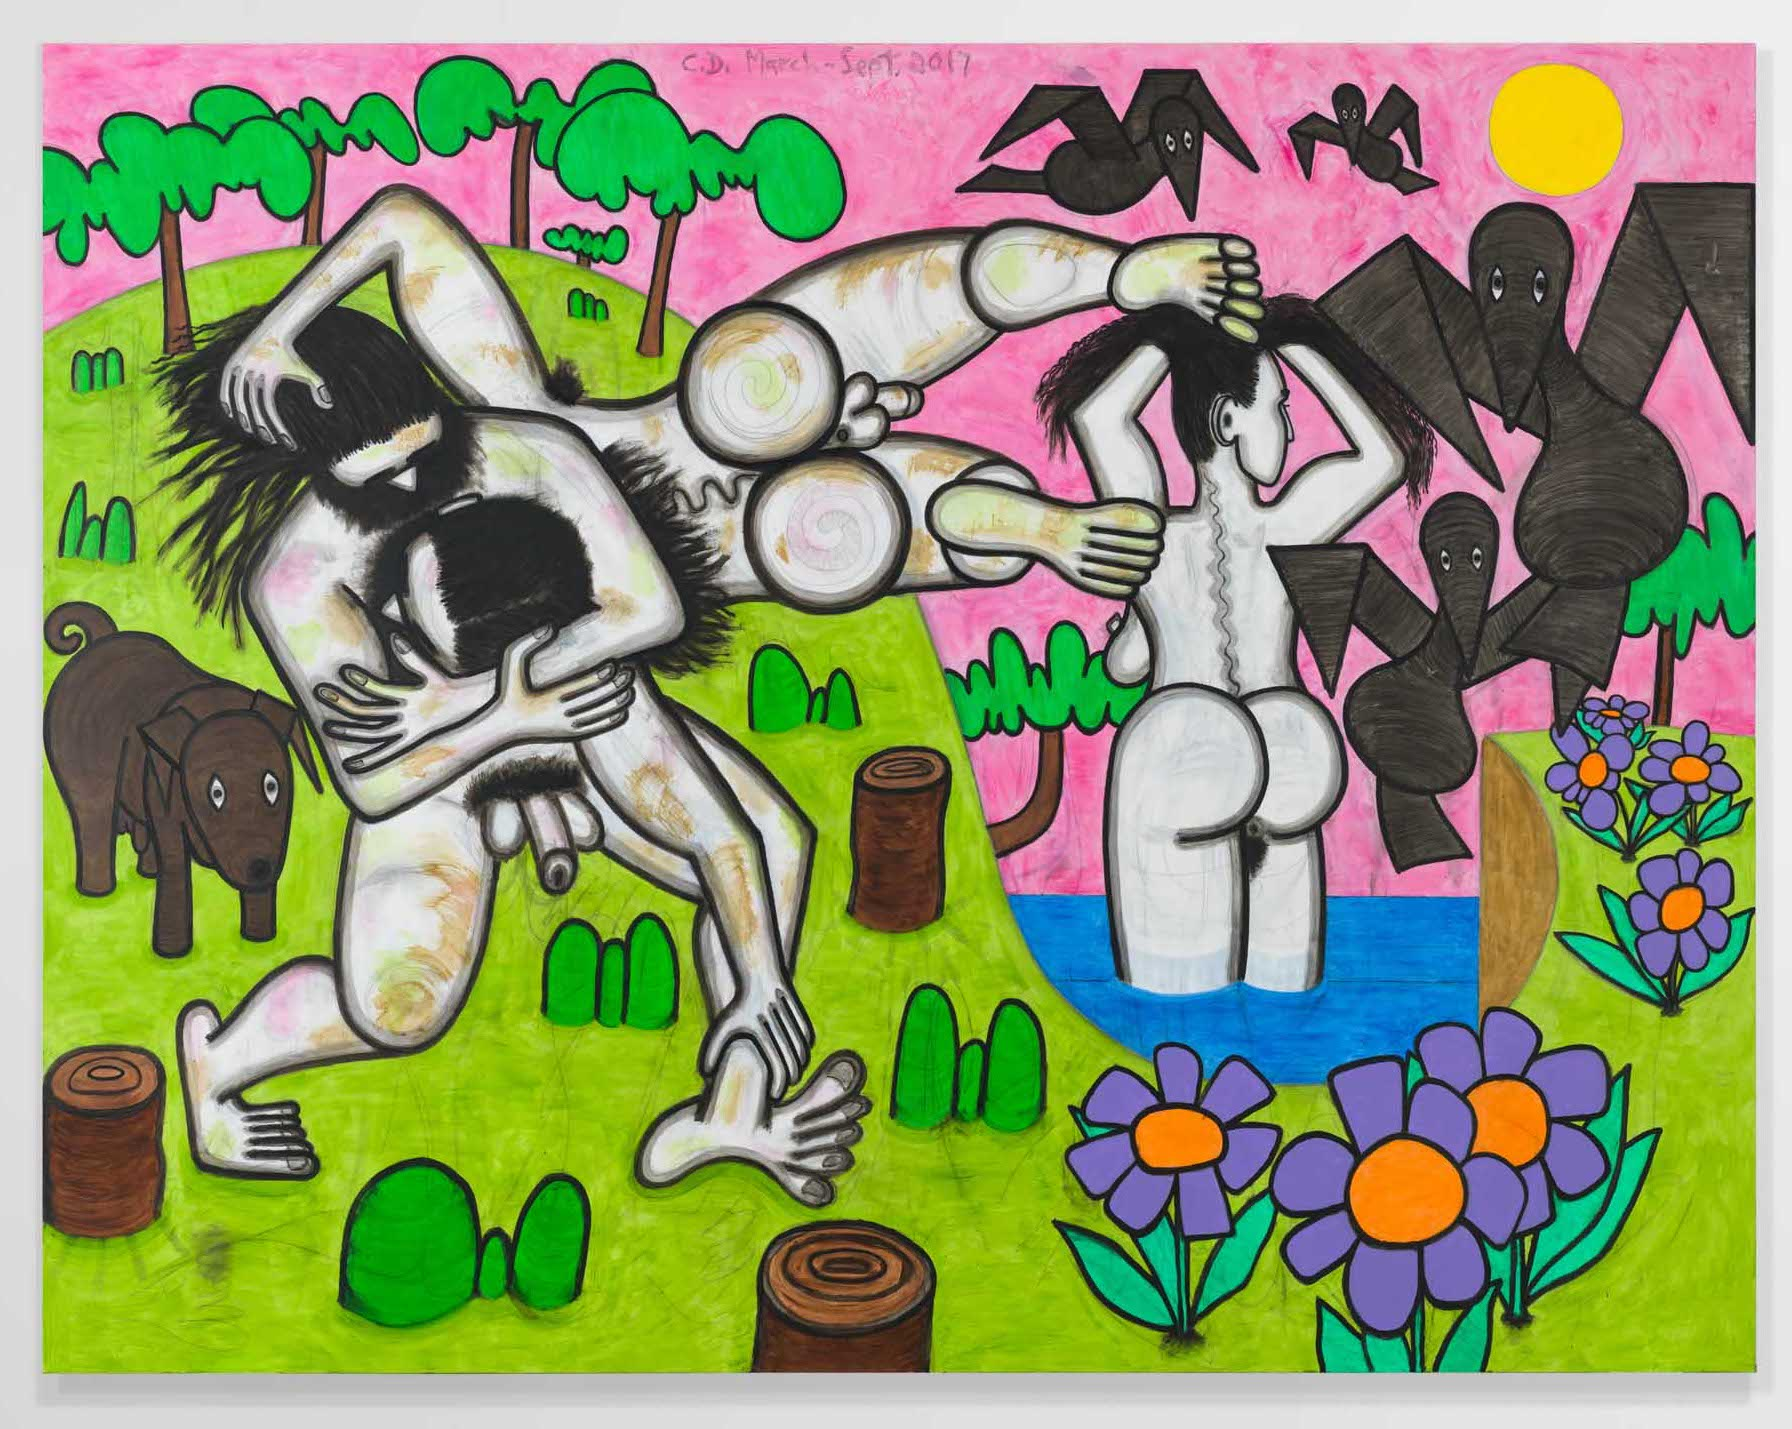 Carroll Dunham Any Day, 2017, © Carroll Dunham. Courtesy the artist and Gladstone Gallery, New York and Brussels